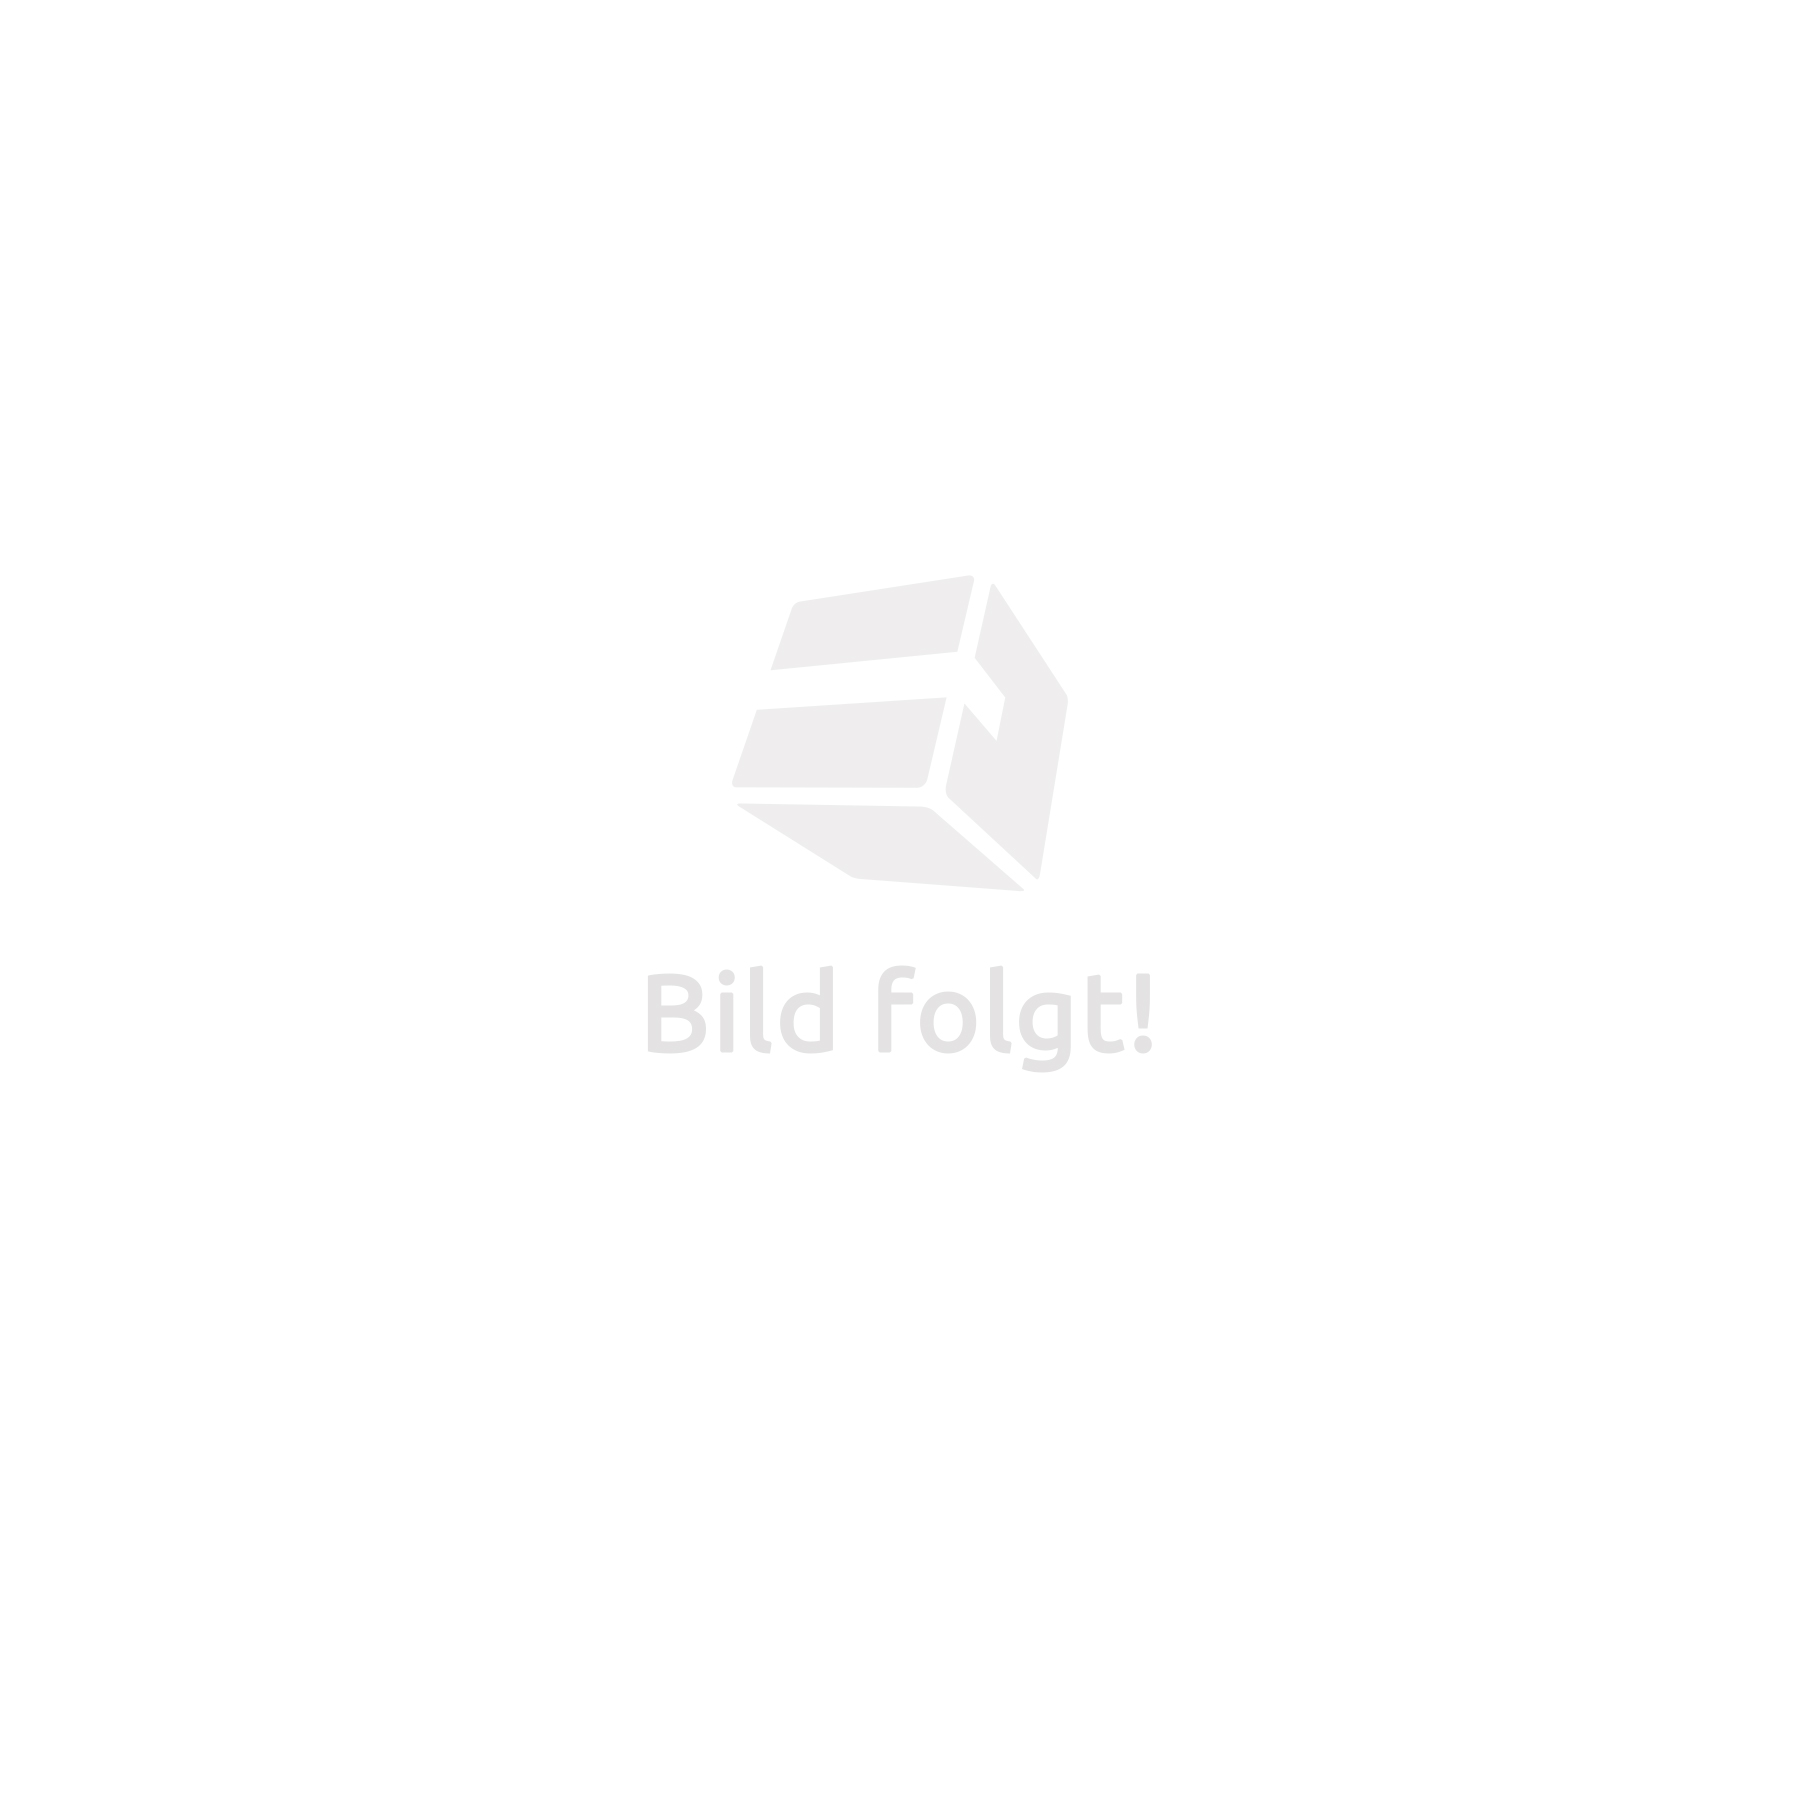 Shower caddy AISI 304 stainless steel